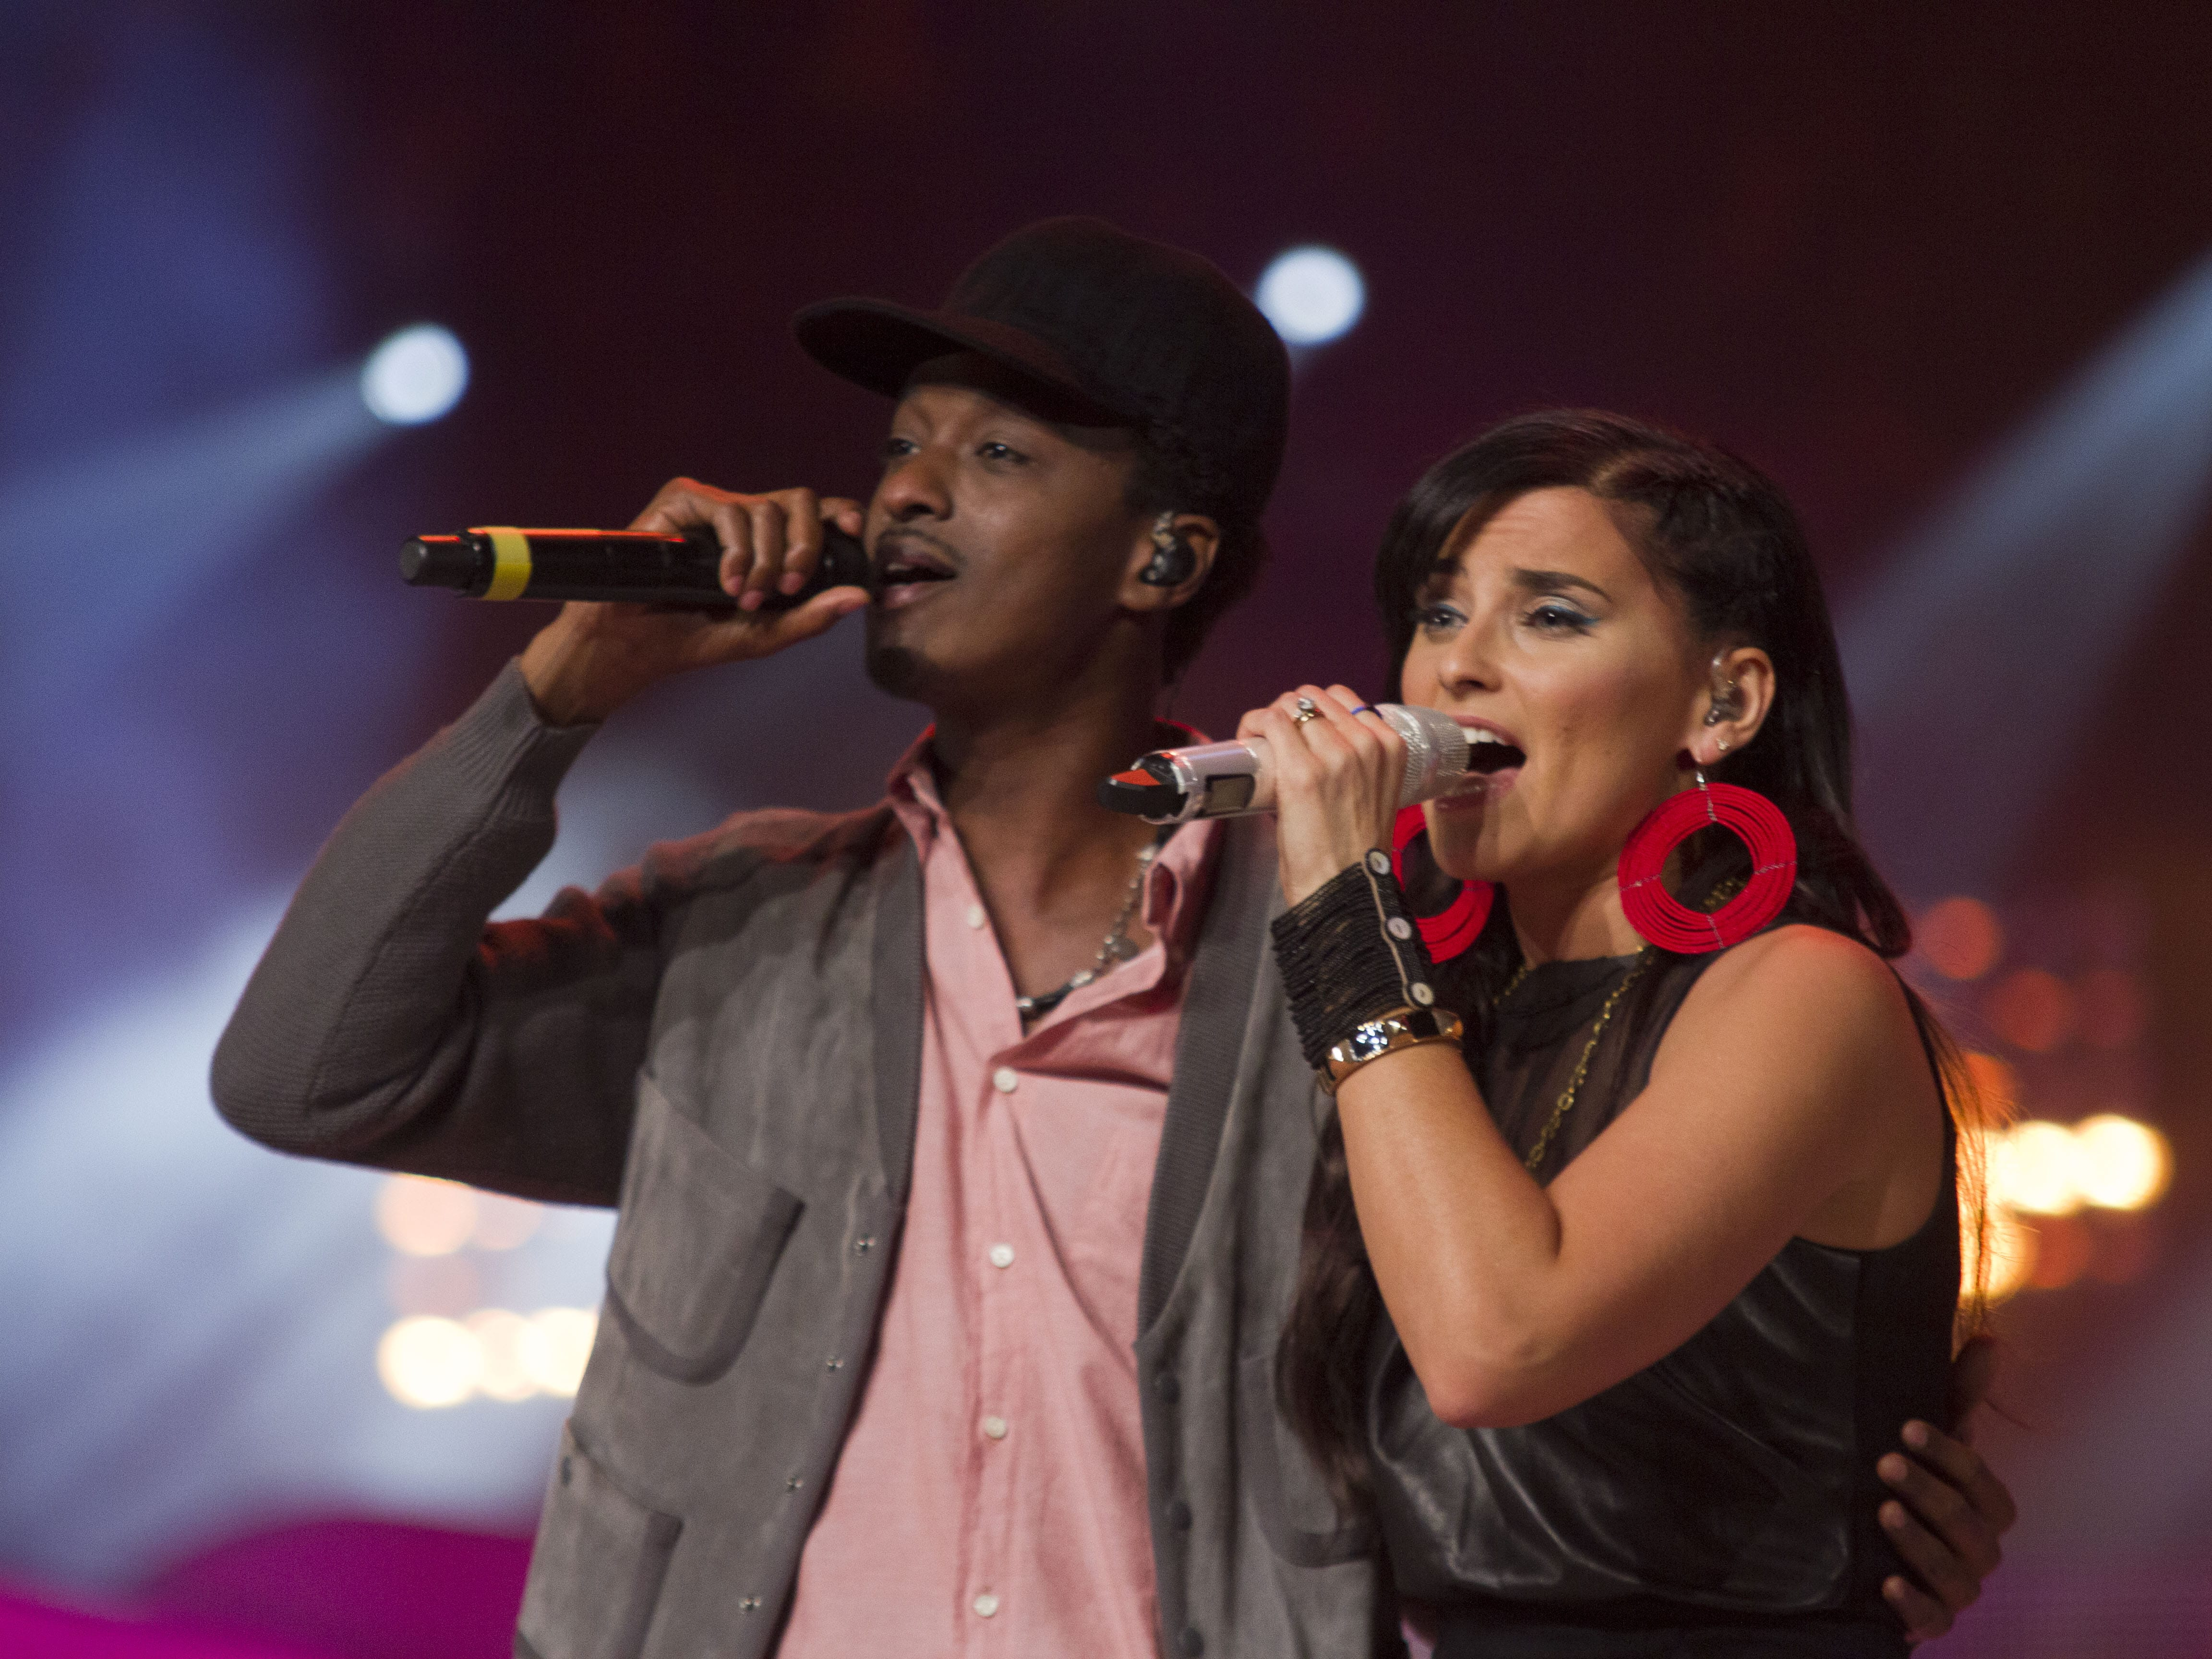 A man and woman sing into a microphone